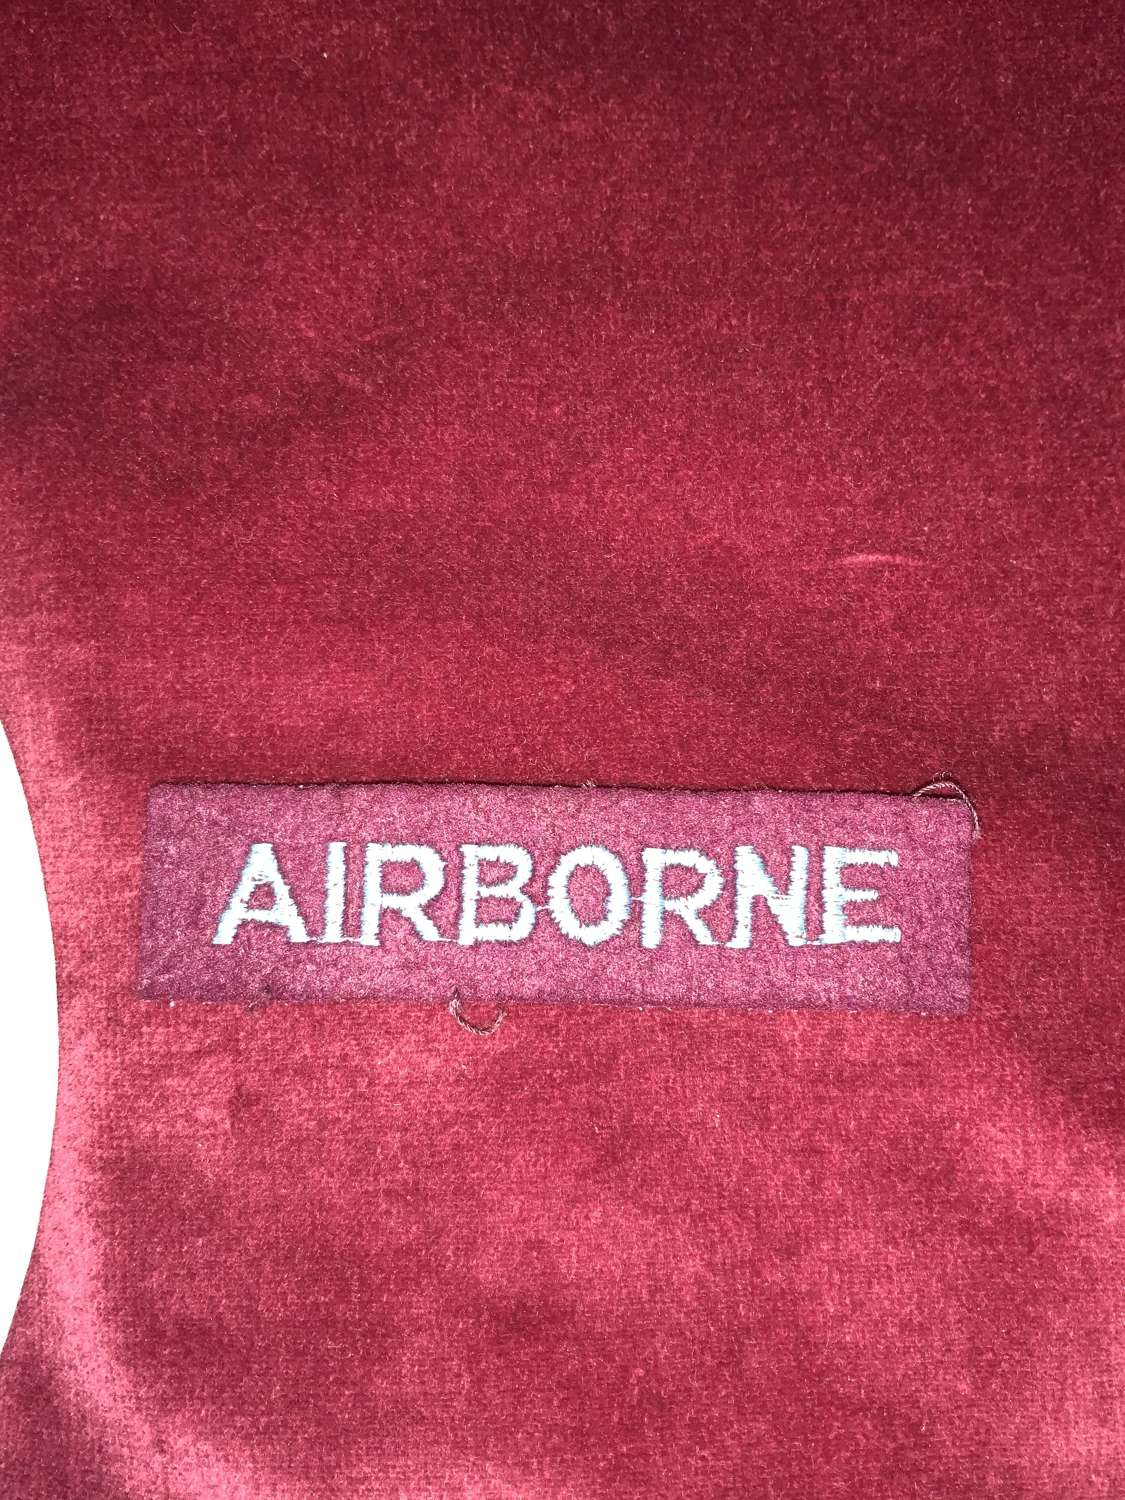 Airborne Shoulder Title